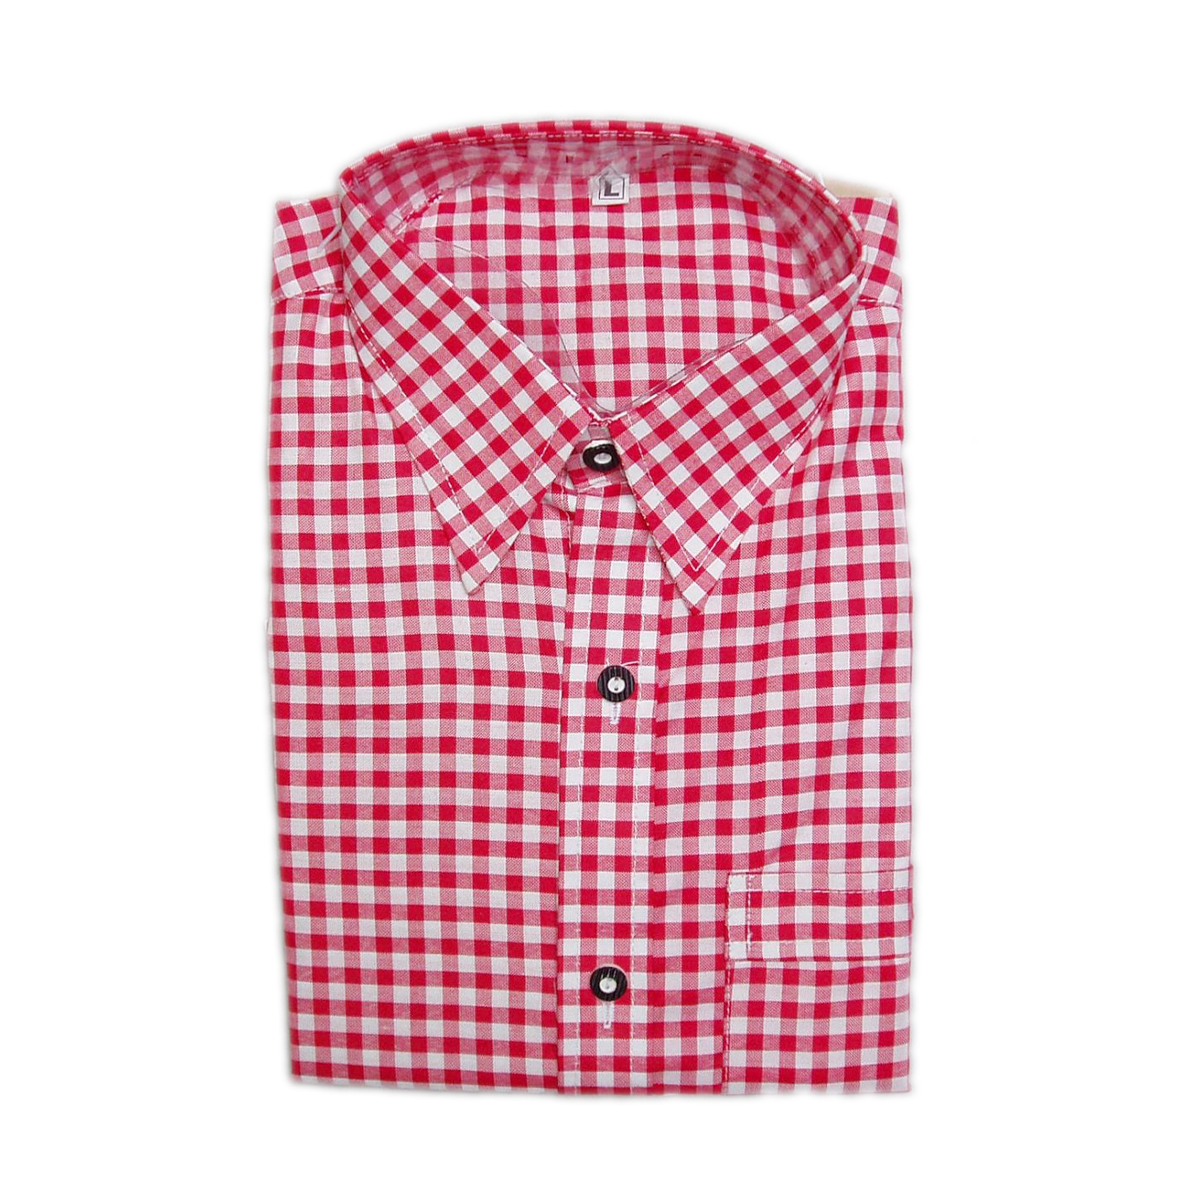 PINK MENS CHECK SHIR